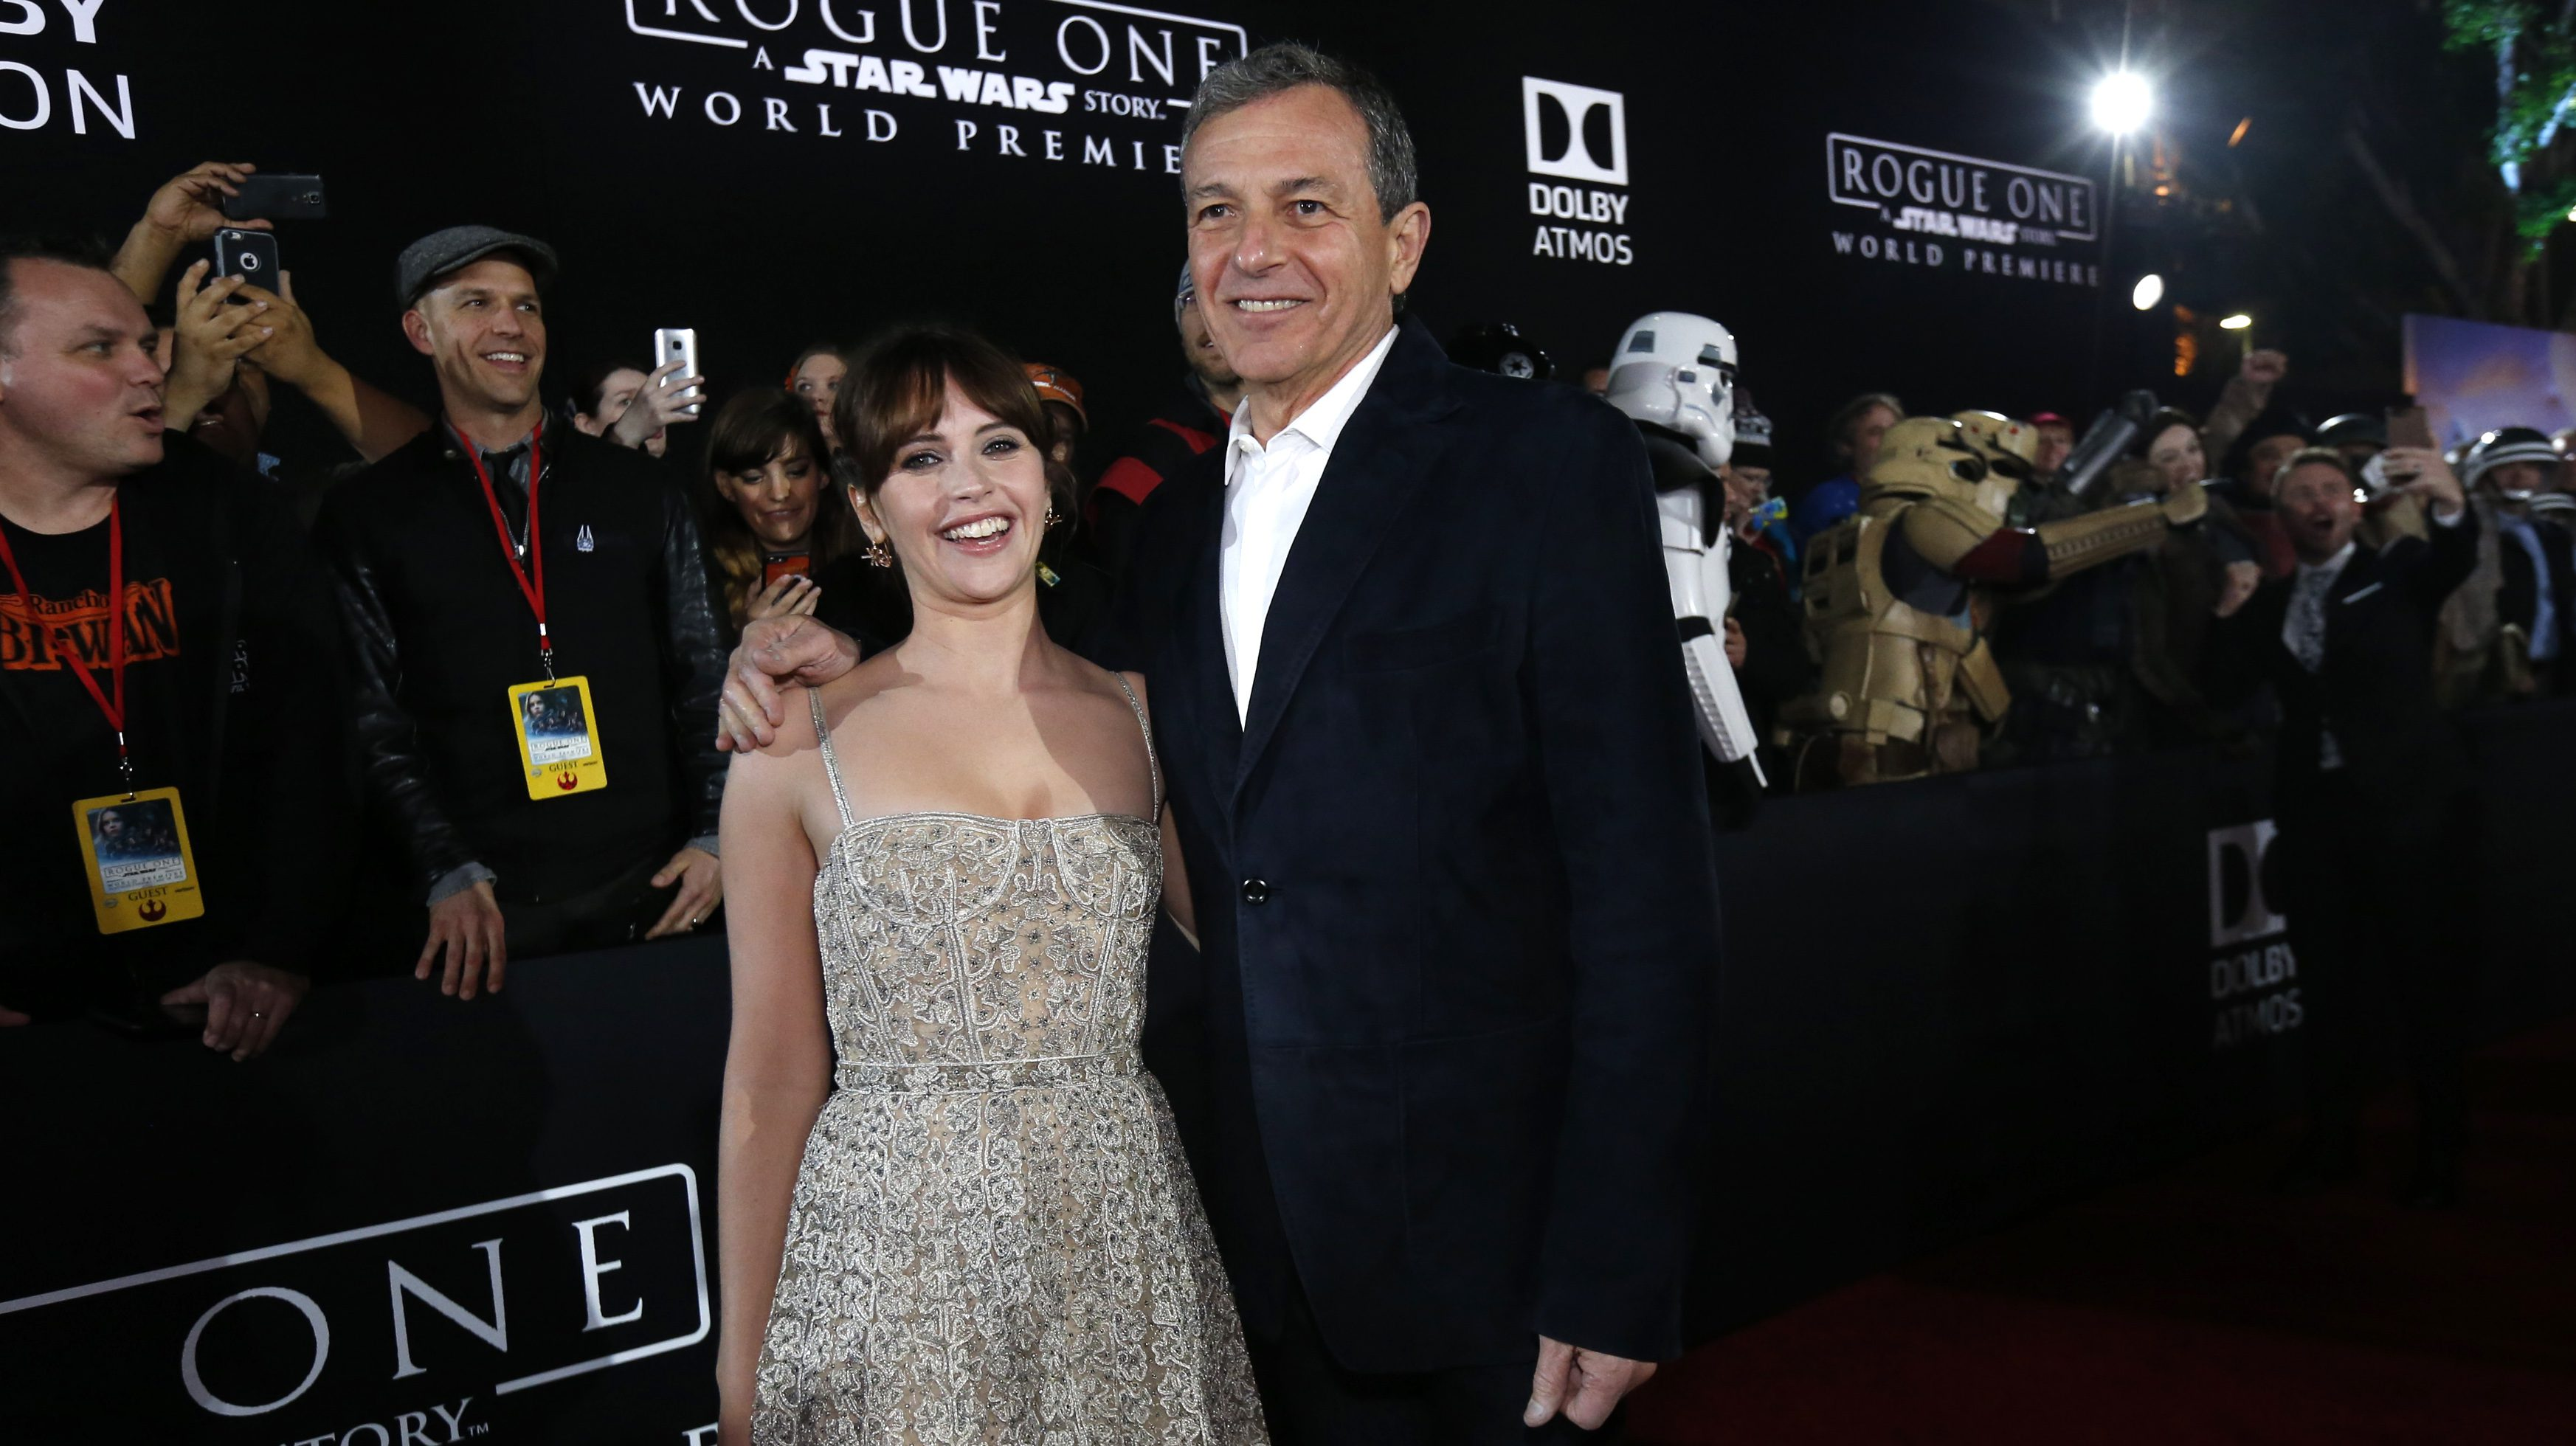 """Actress Felicity Jones and Chief Executive Officer of Disney Bob Iger arrive at the world premiere of the film """"Rogue One: A Star Wars Story"""" in Hollywood, California, U.S., December 10, 2016.  REUTERS/Mario Anzuoni - RTX2UGU3"""